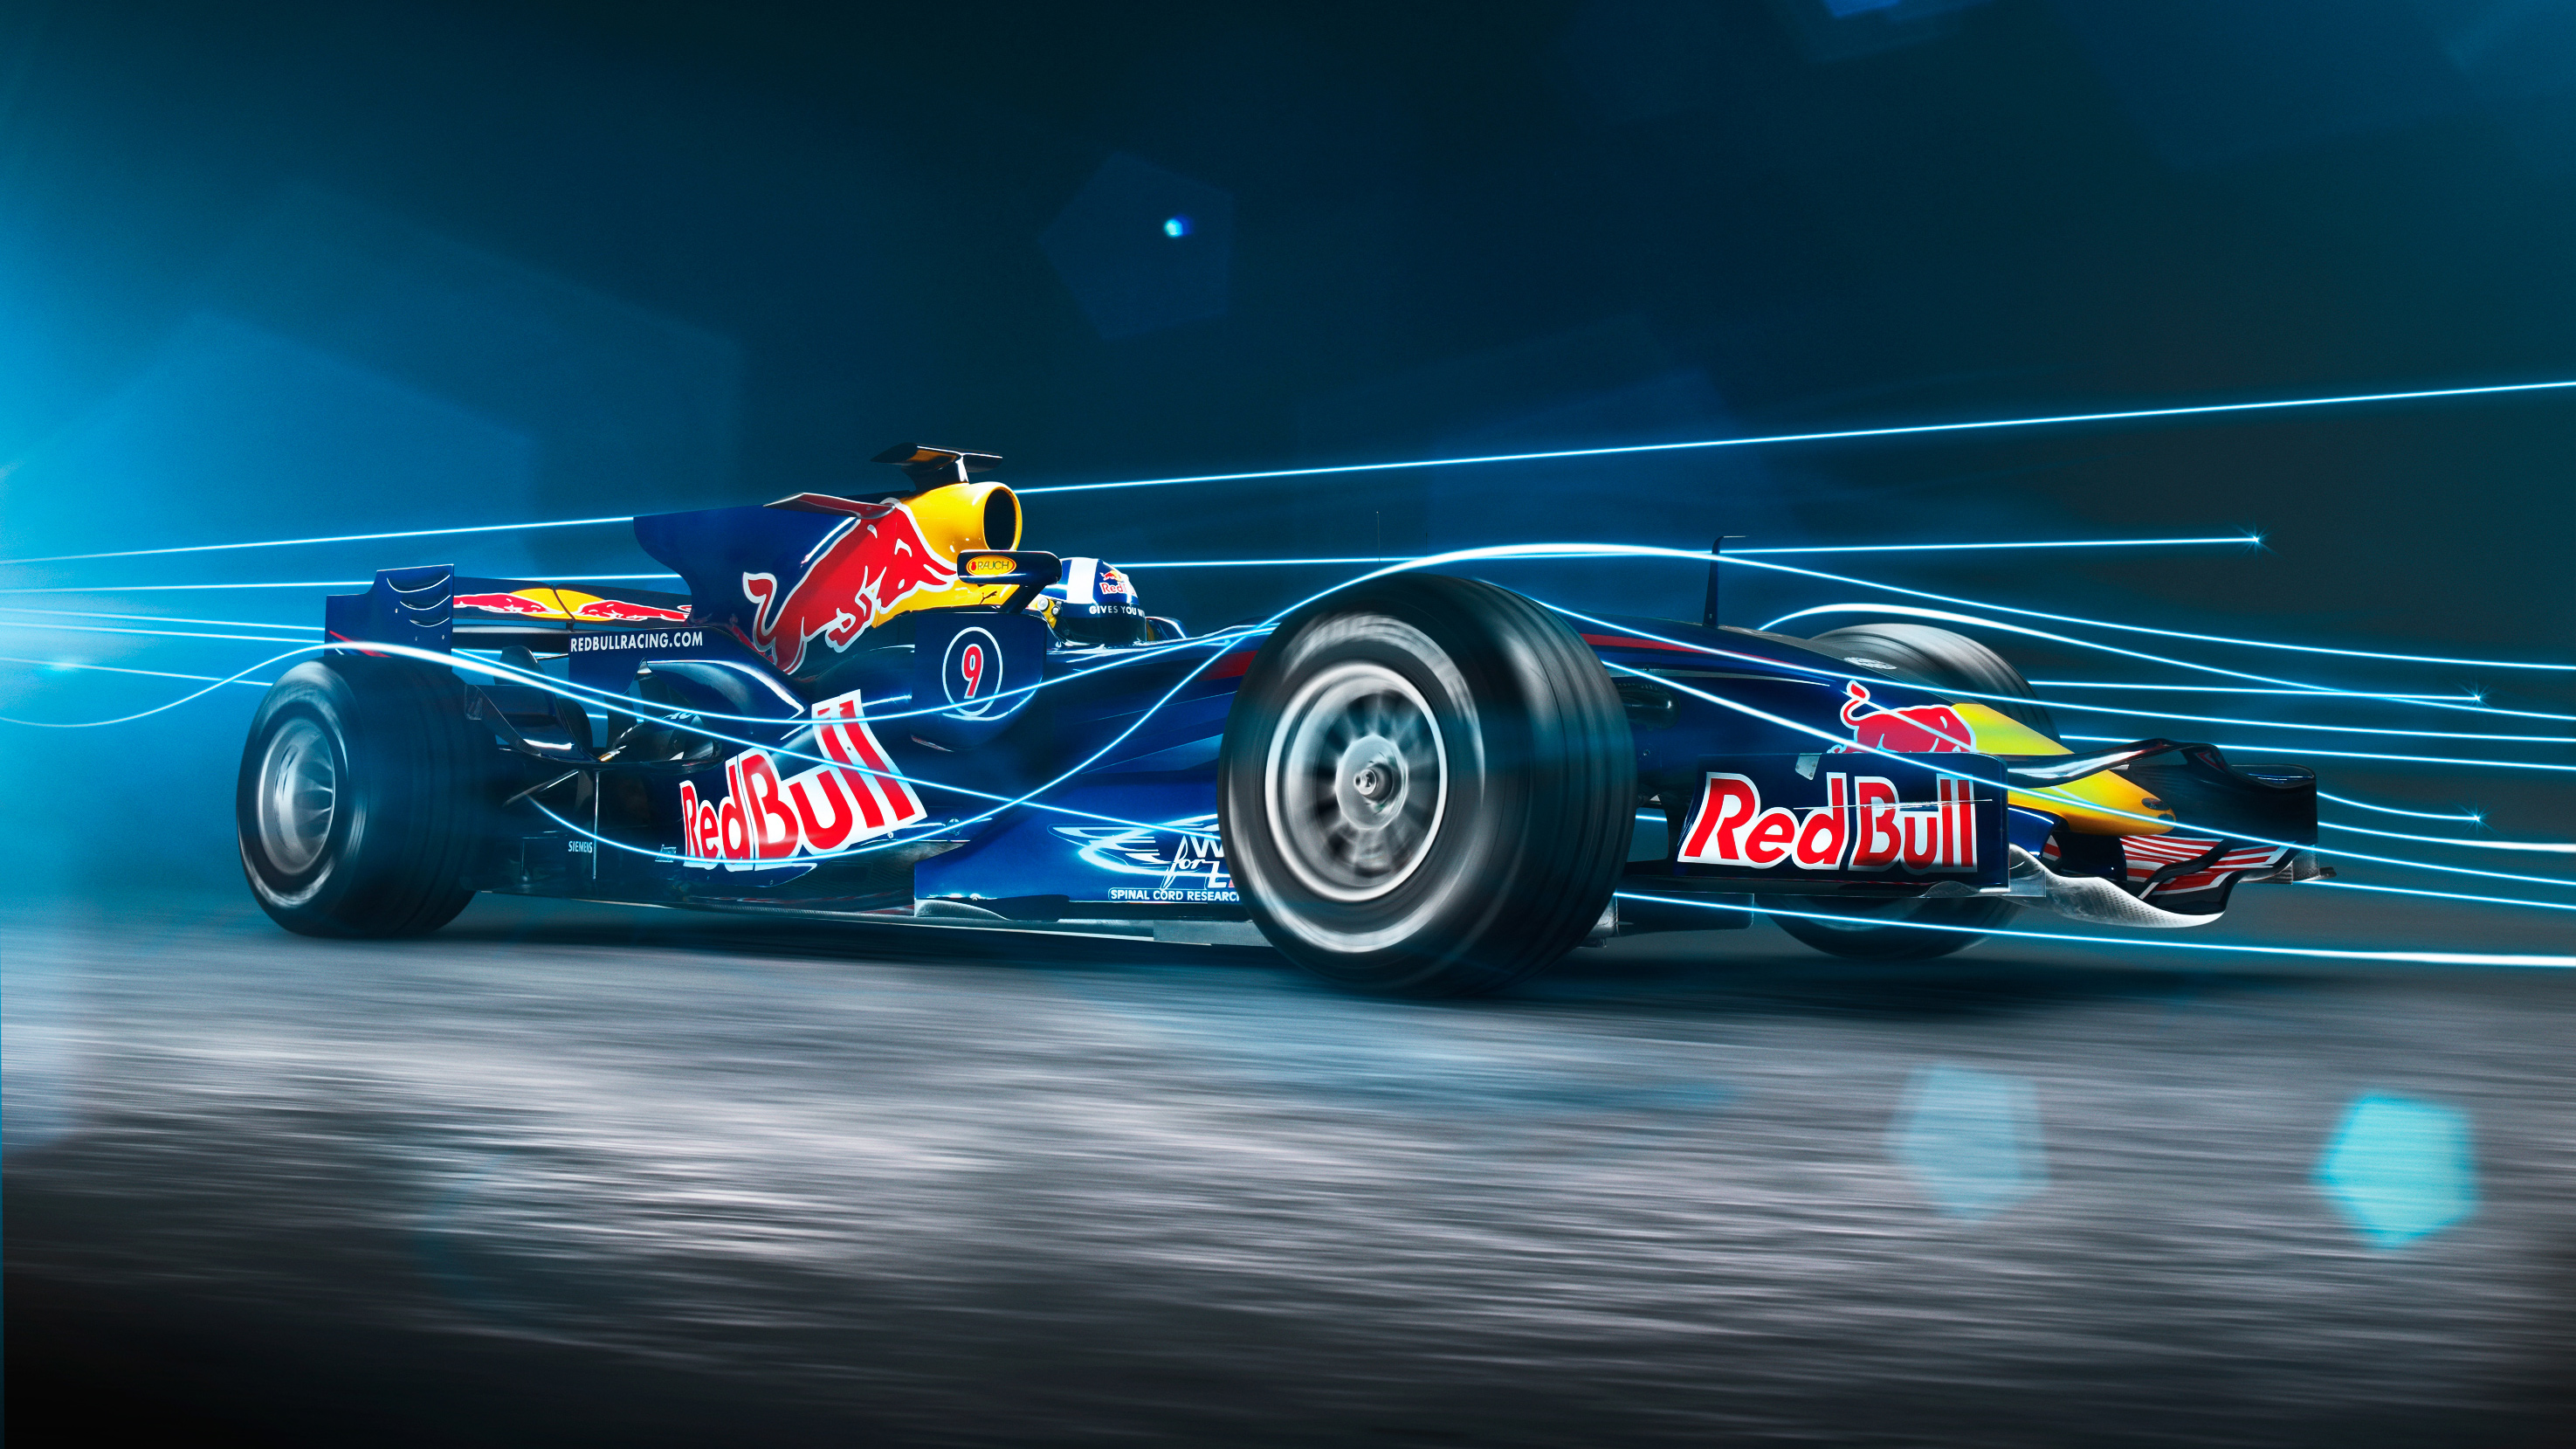 red bull racing f1 hd wallpaper hd car wallpapers id 8031. Black Bedroom Furniture Sets. Home Design Ideas